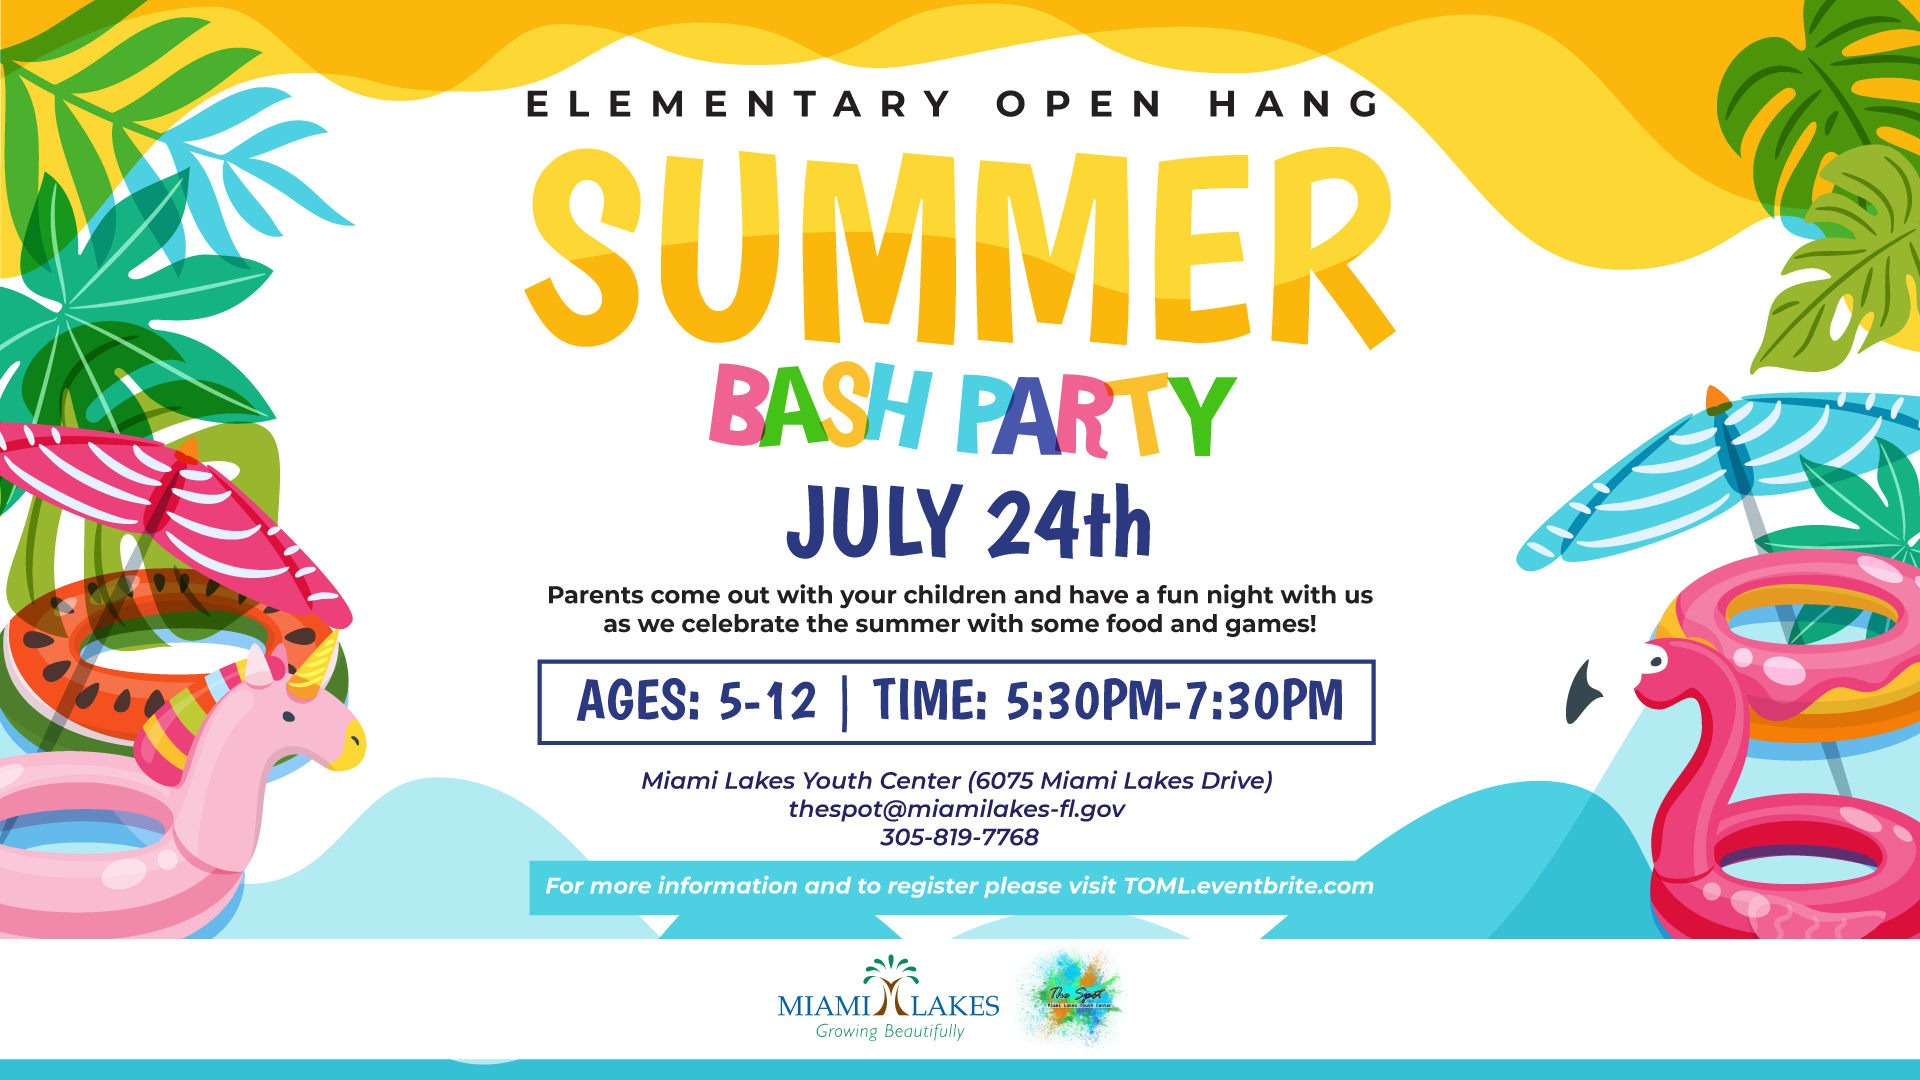 Elementary Open Hang Summer flyer